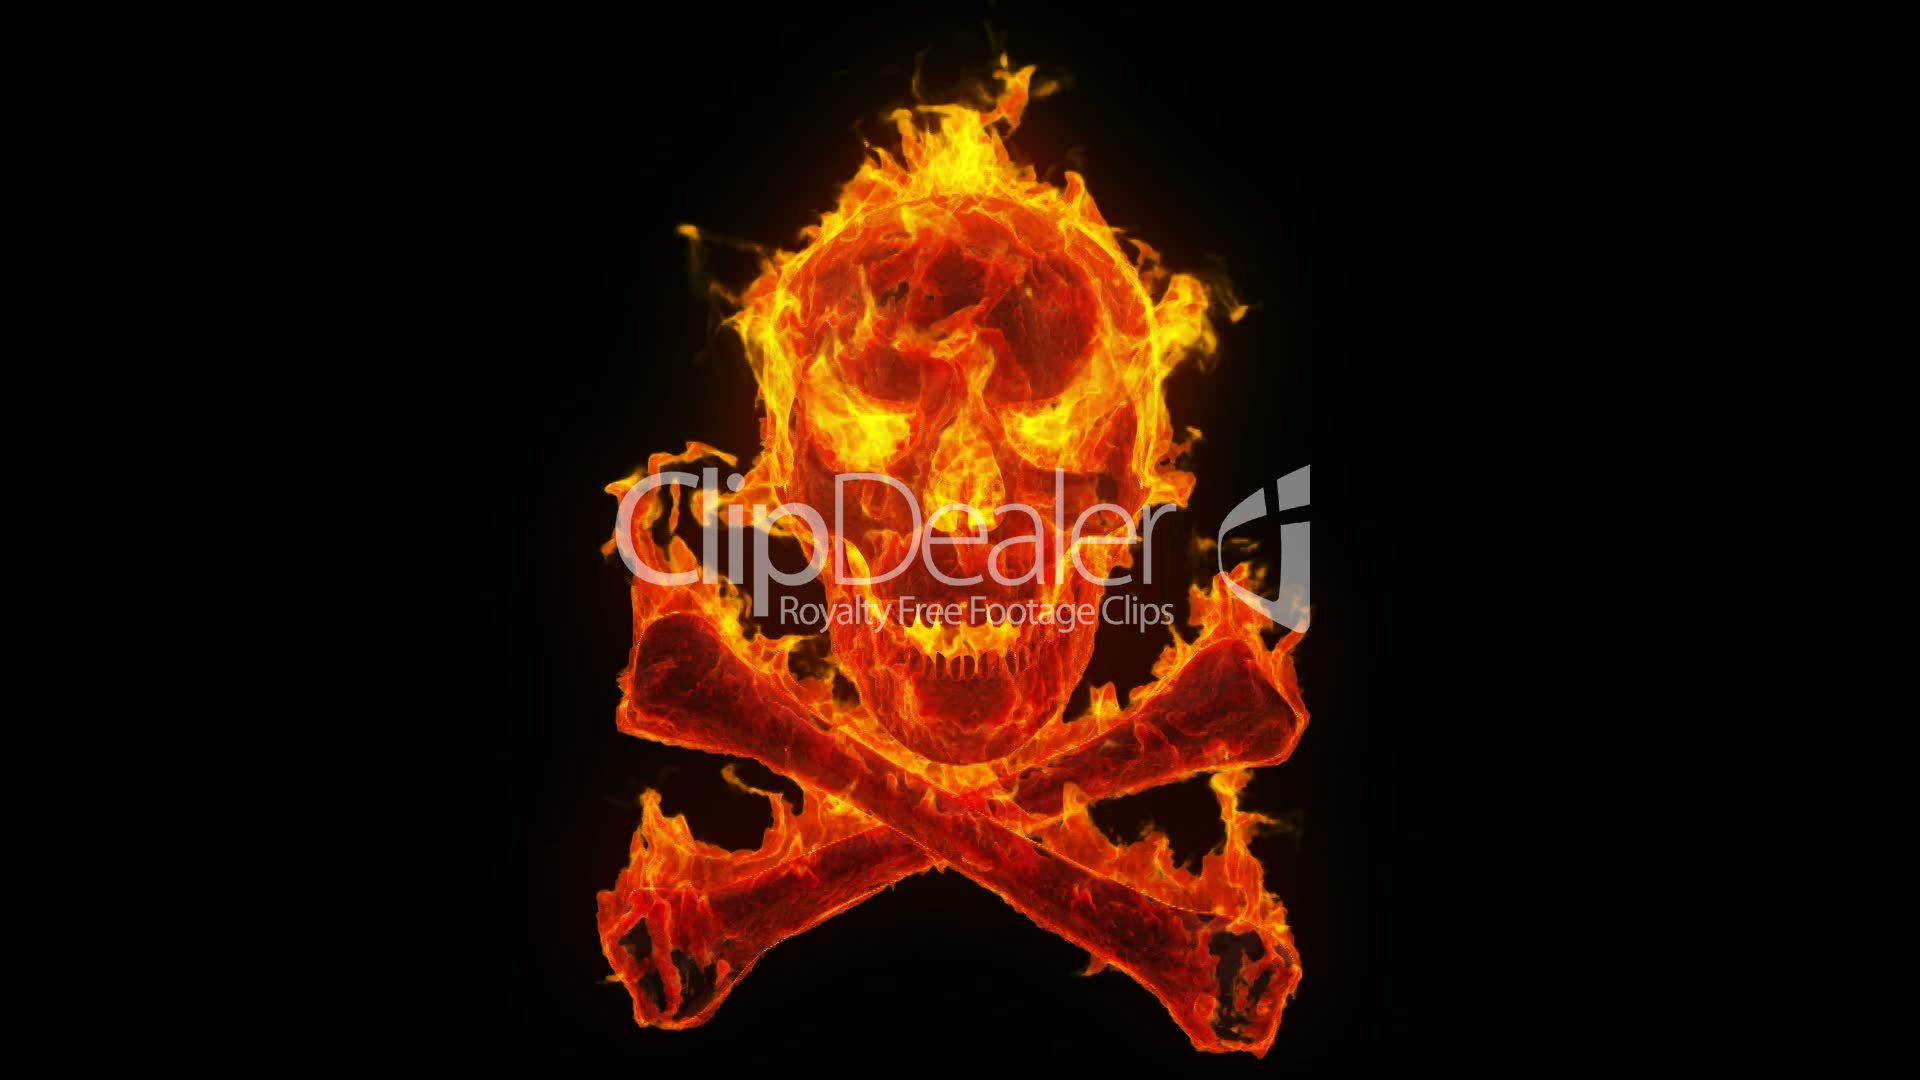 Burning Evil Skull And Crossbones | www.imgkid.com - The ...